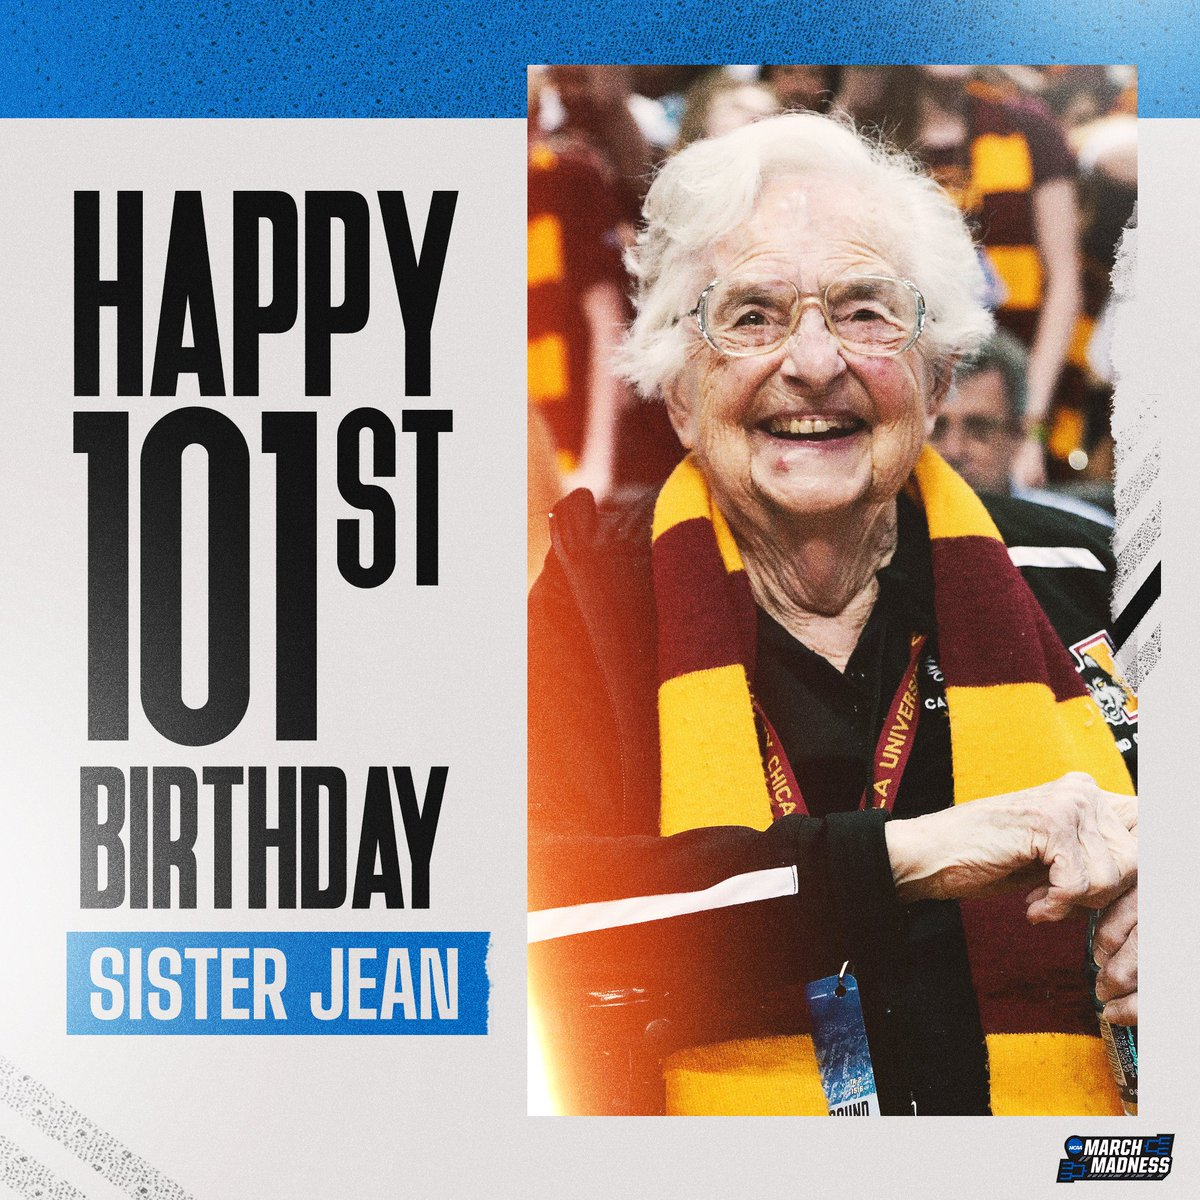 A #MarchMadness legend turns 1️⃣0️⃣1️⃣ today!  RT to wish #SisterJean a Happy Birthday! 🎂 https://t.co/sOH7jlTmYV